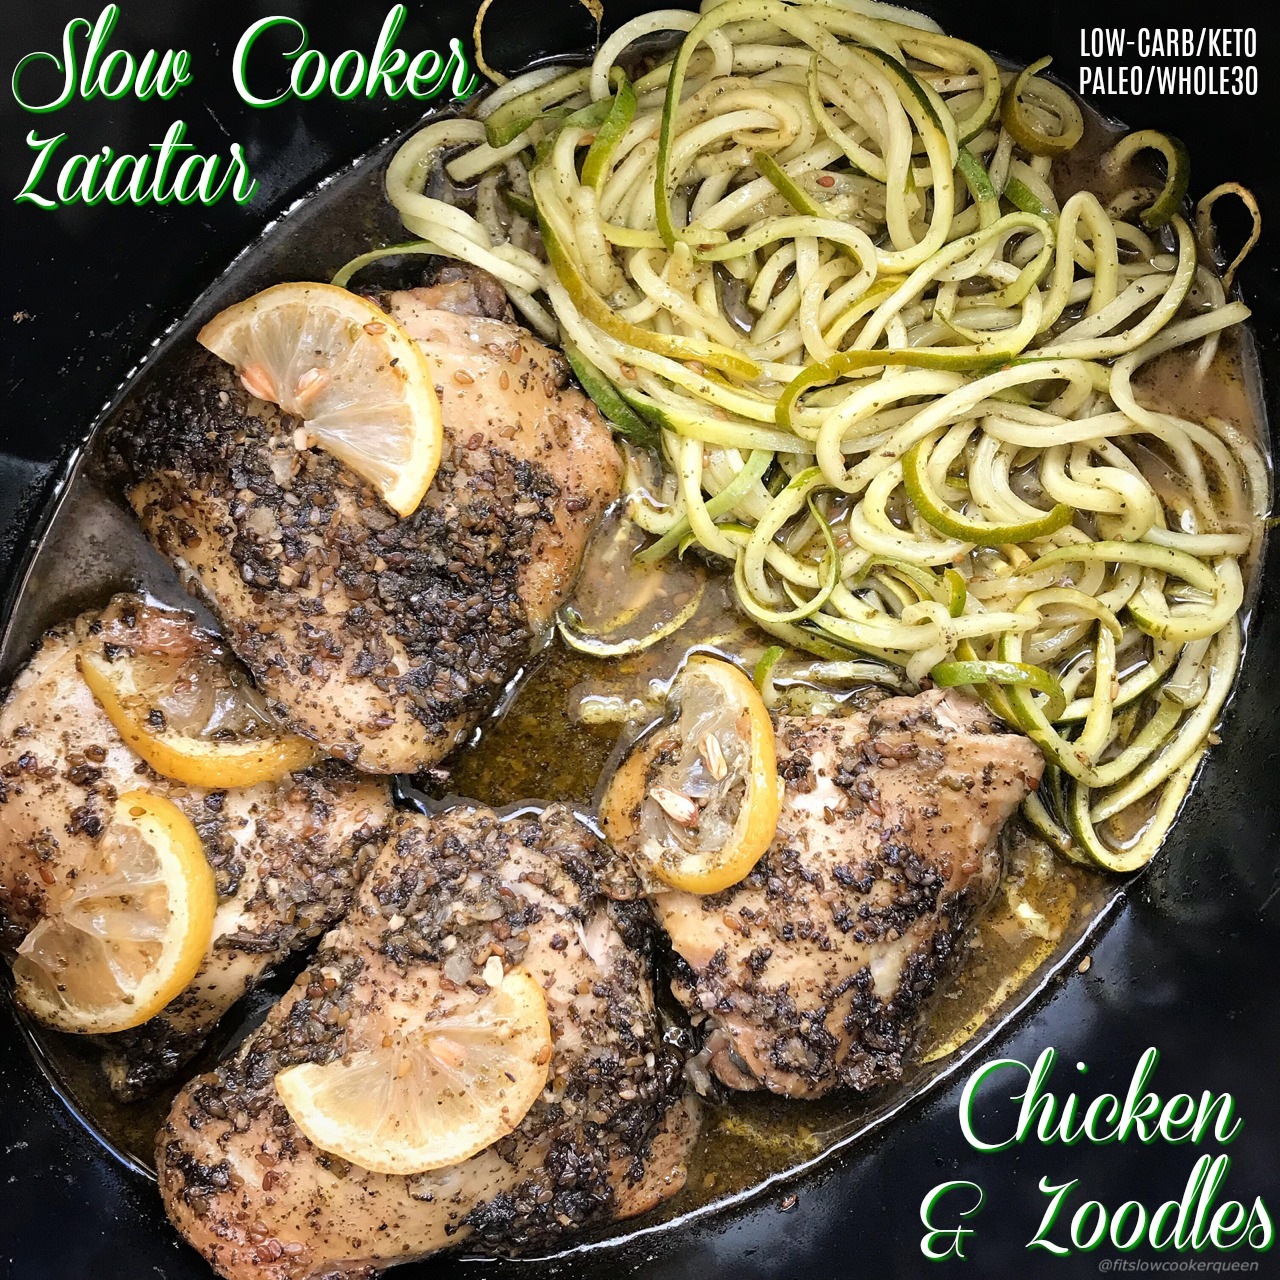 A homemade sauce using za'atar, chicken, and zoodles cook together in this simple and healthy paleo, whole30, and low-carb slow cooker recipe.